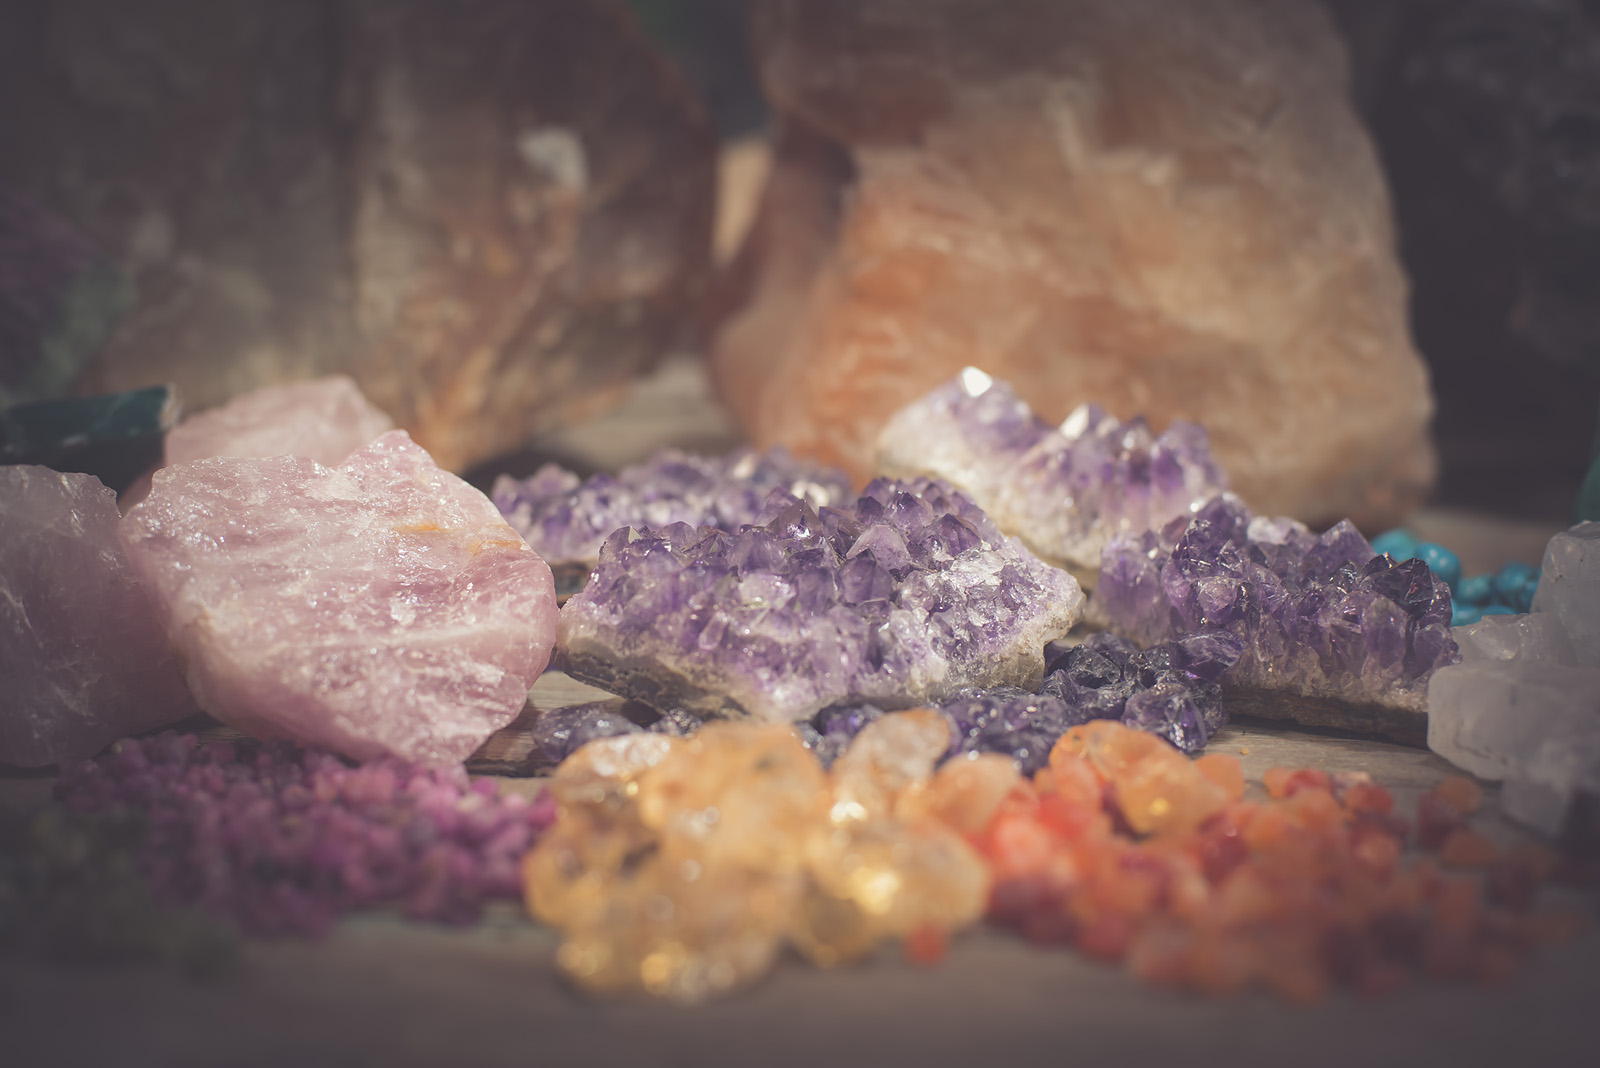 Rough stone of Amethyst, Rose quartz